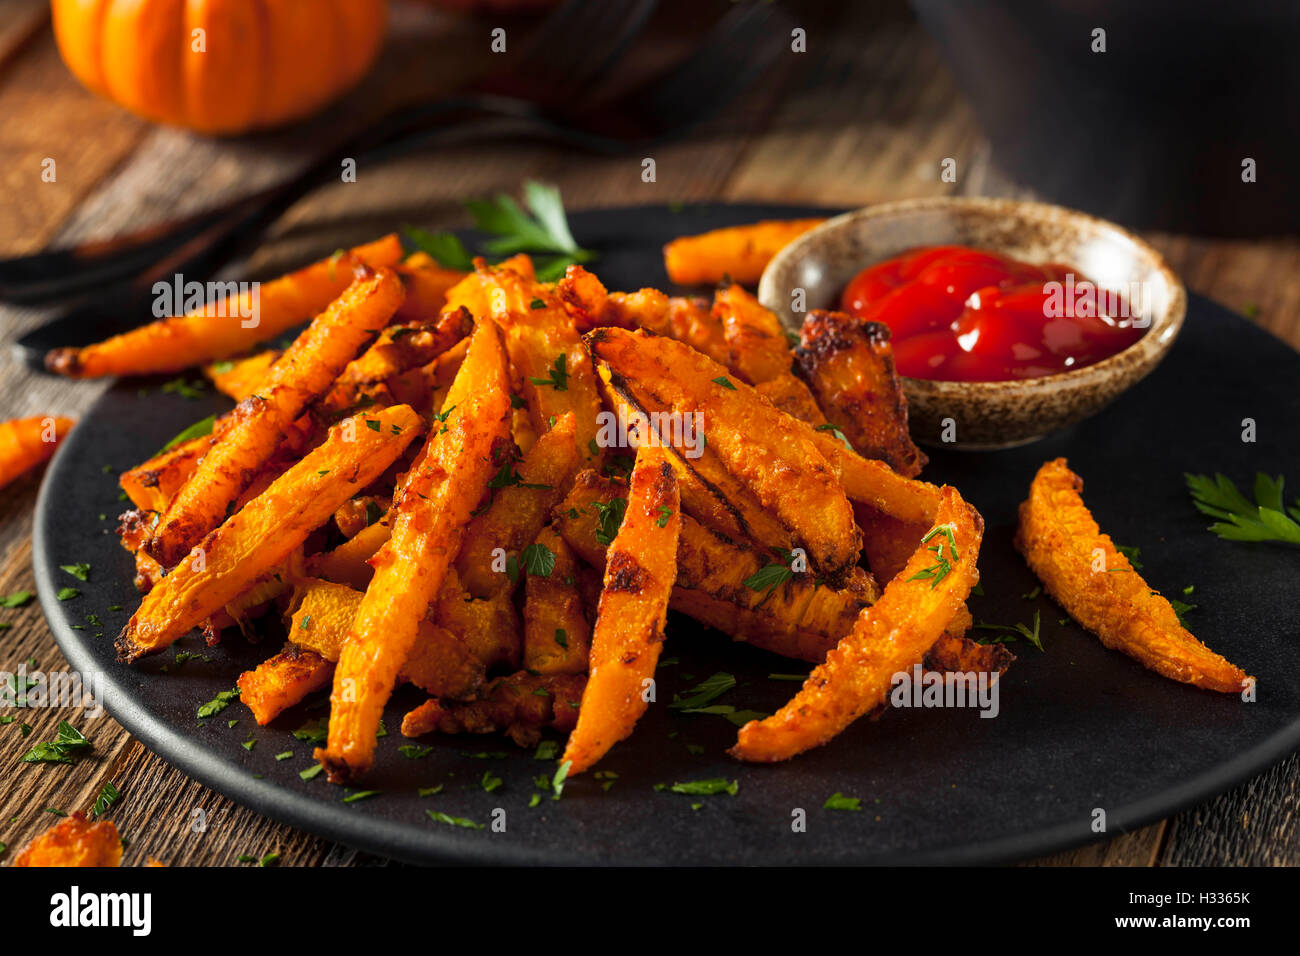 Homemade Organic Pumpkin French Fries with Ketchup - Stock Image